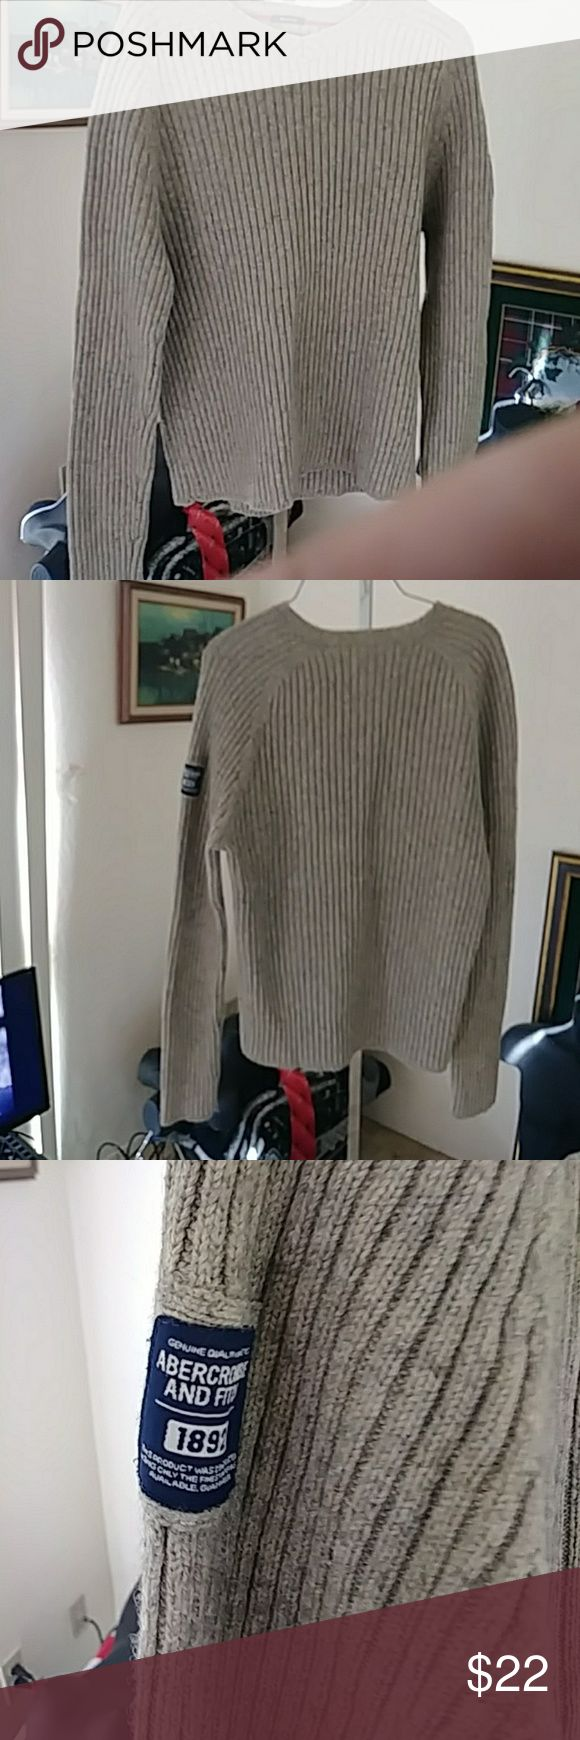 Abercrombie Fitch Muscle Sweater